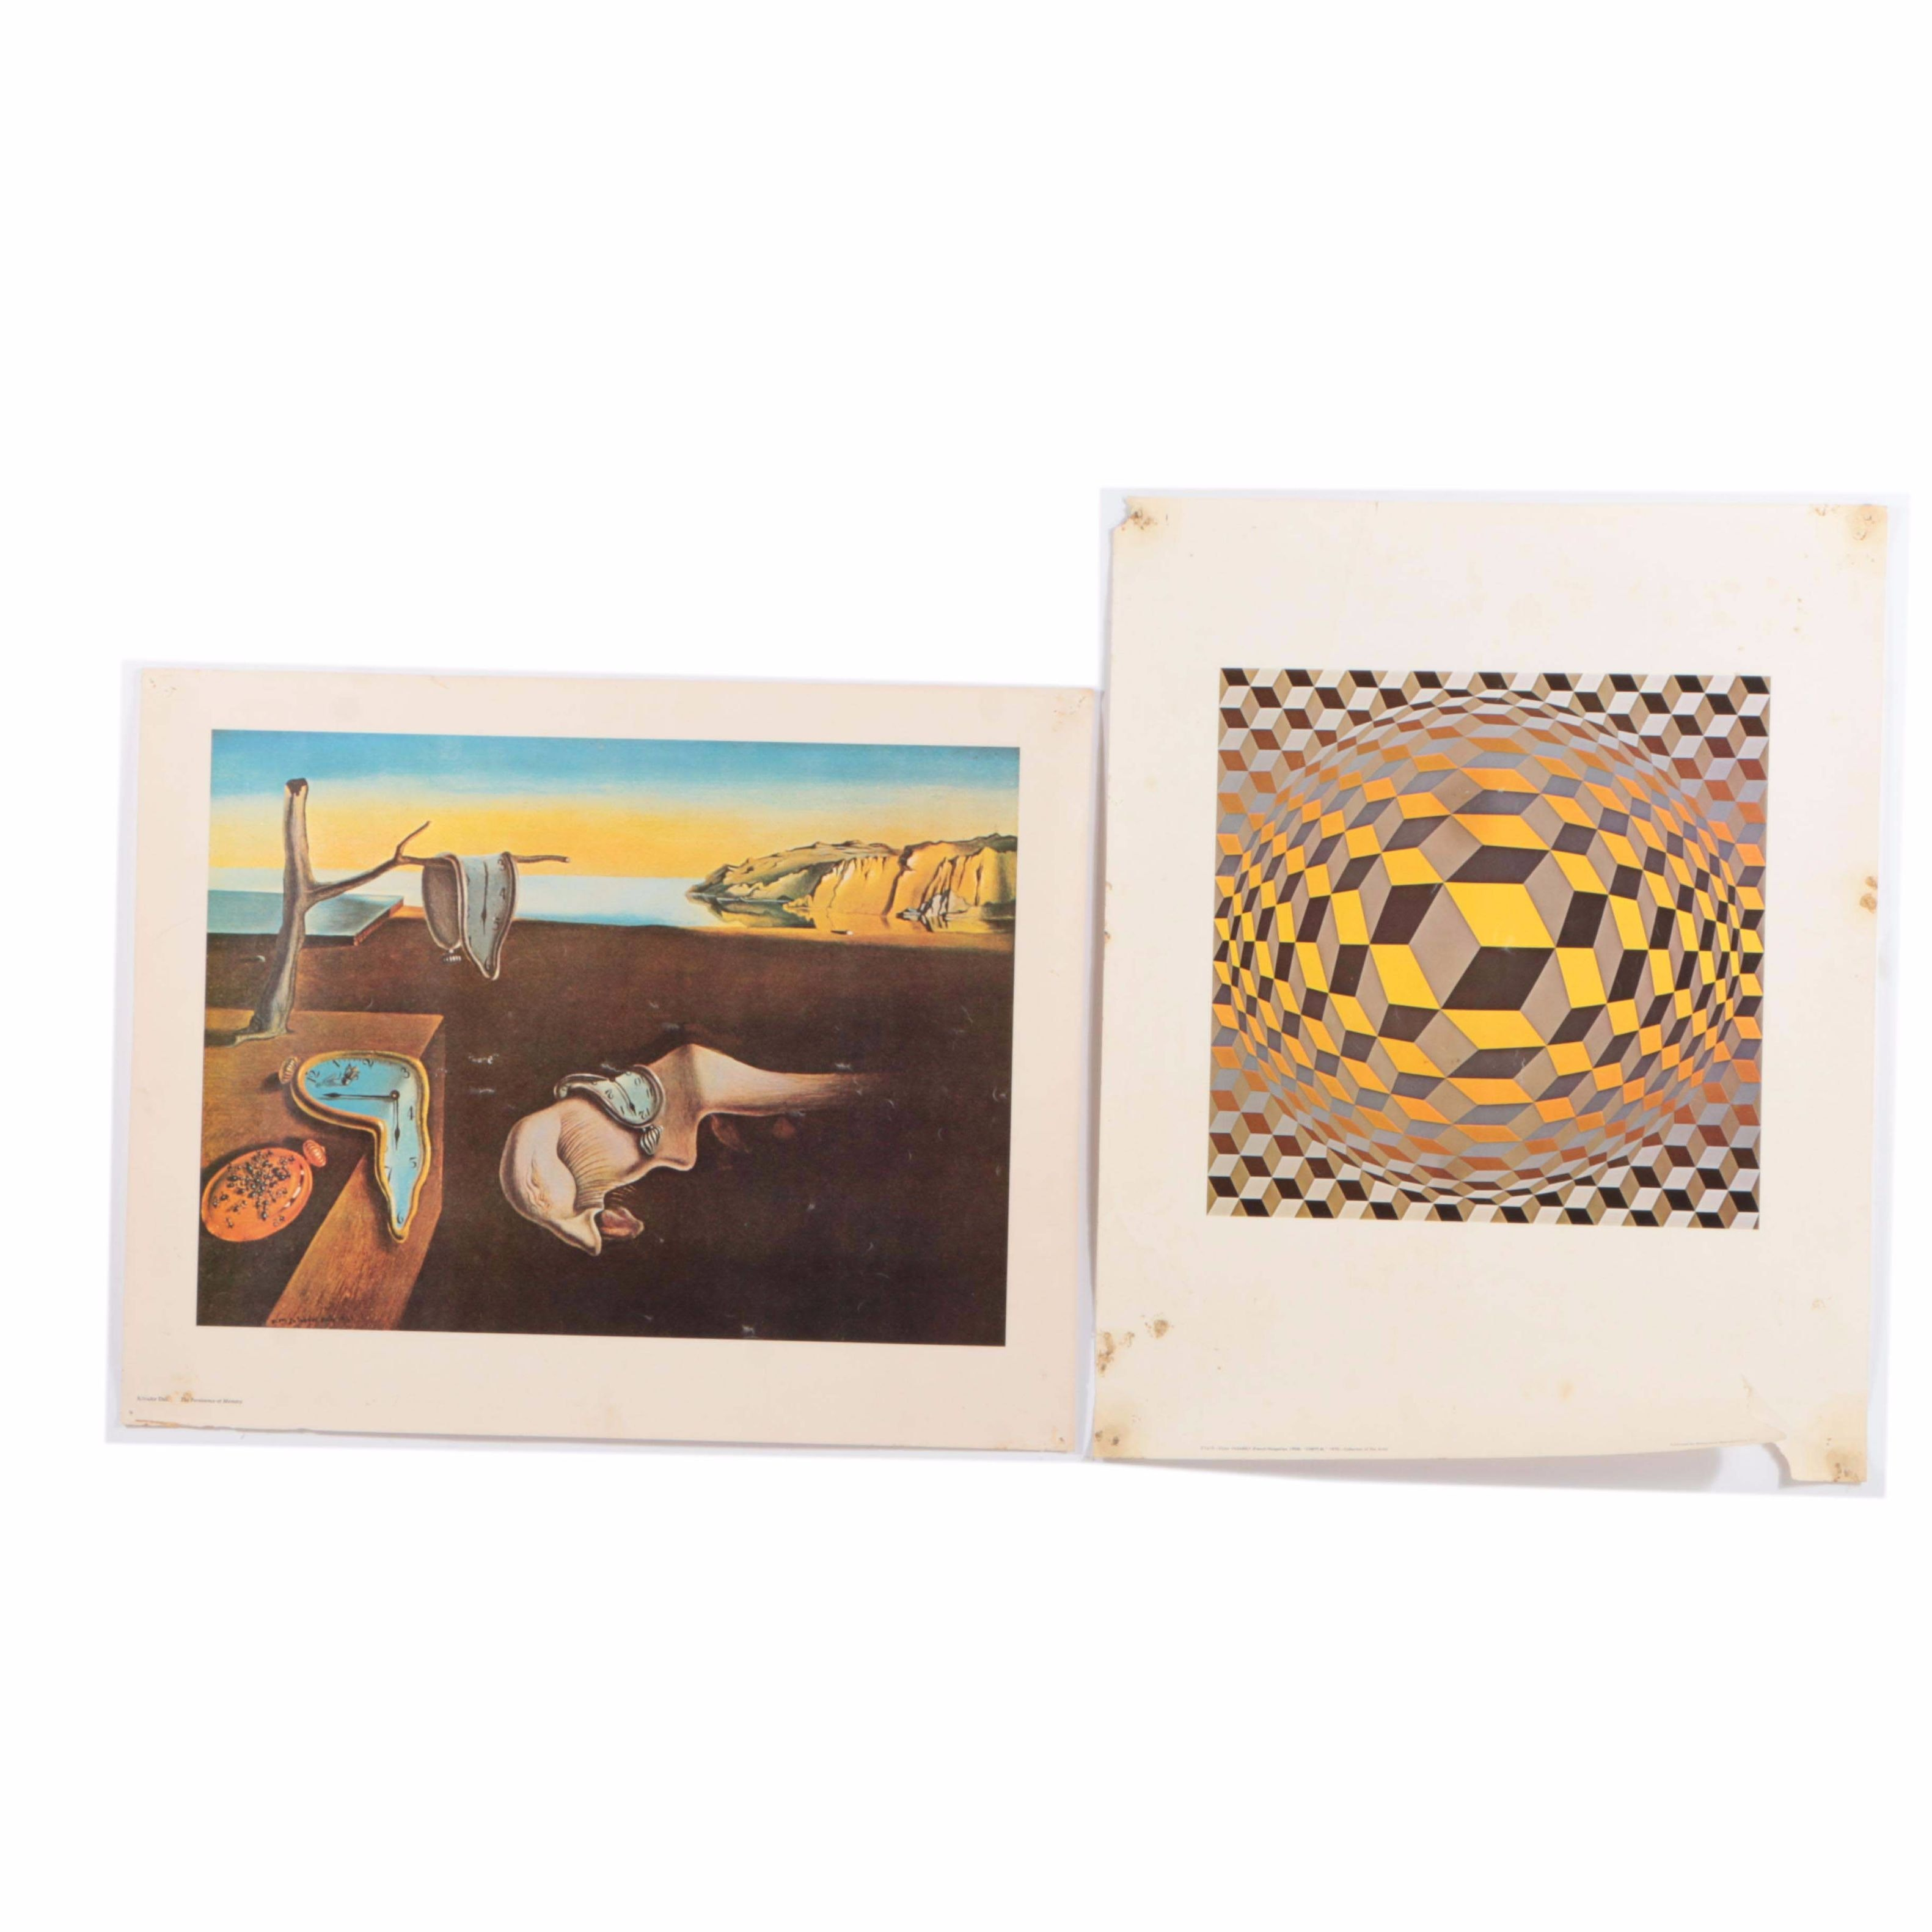 Pair of Offset Lithographs on Paper After Salvador Dalí and Victor Vasarely